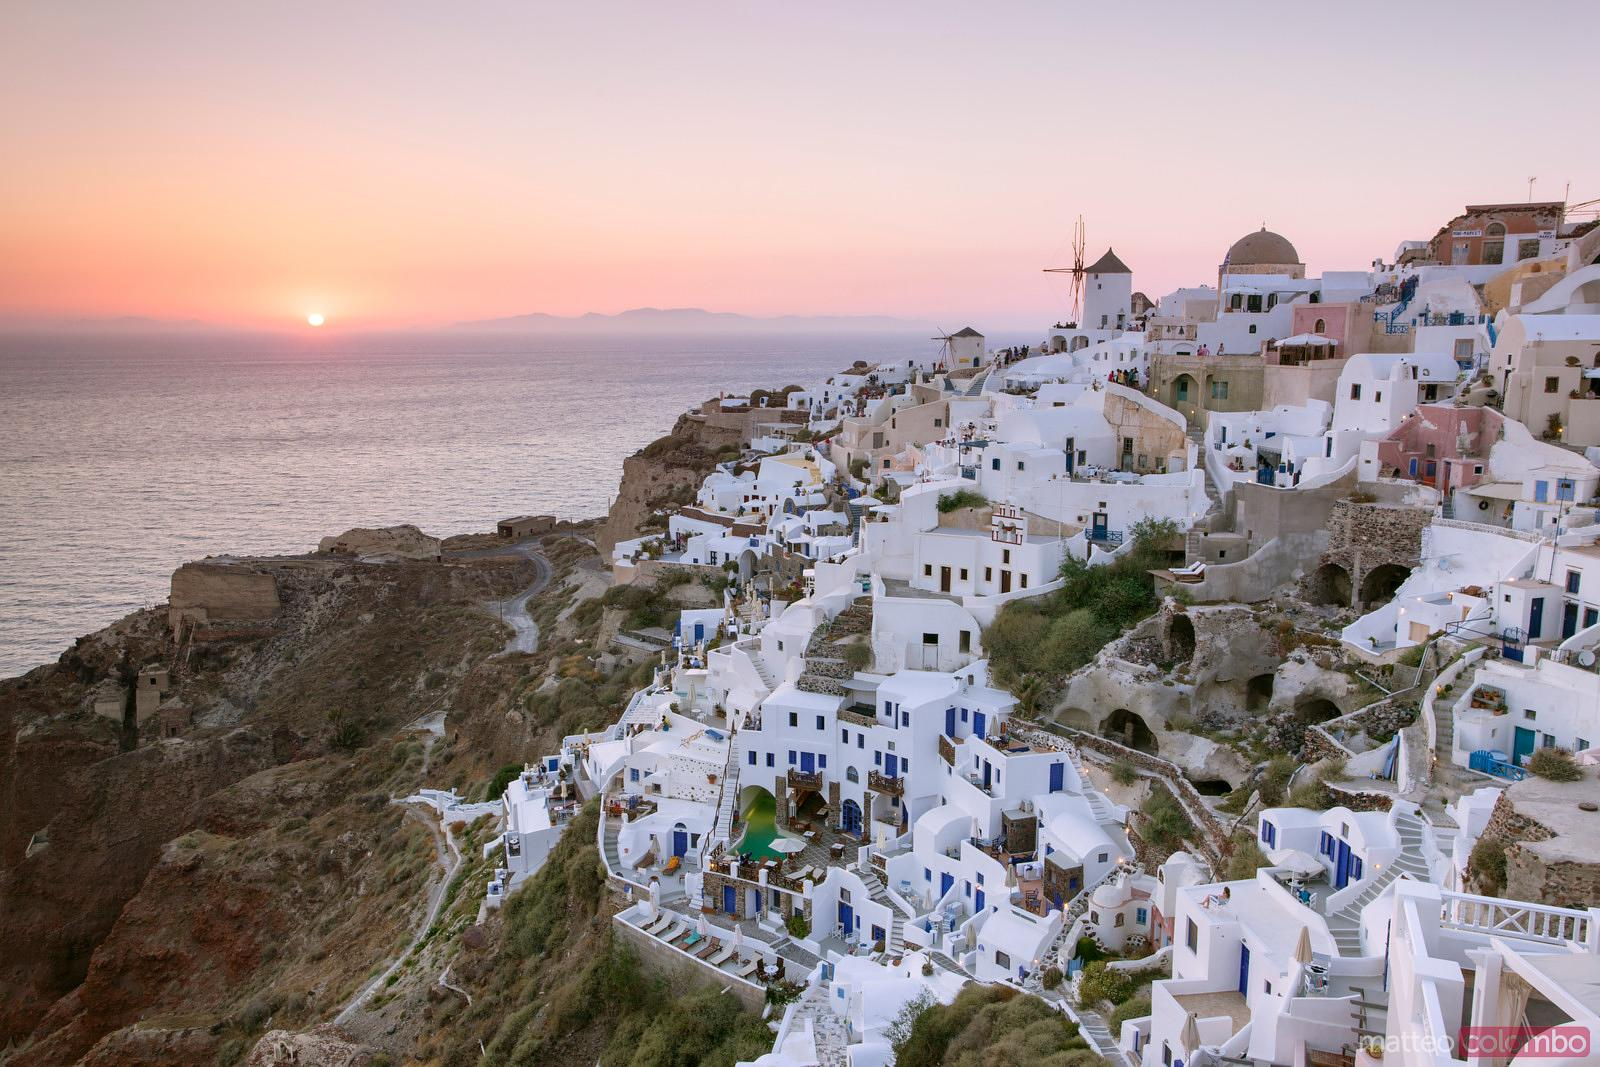 Beautiful sunset over Oia and the sea, Santorini, Greece